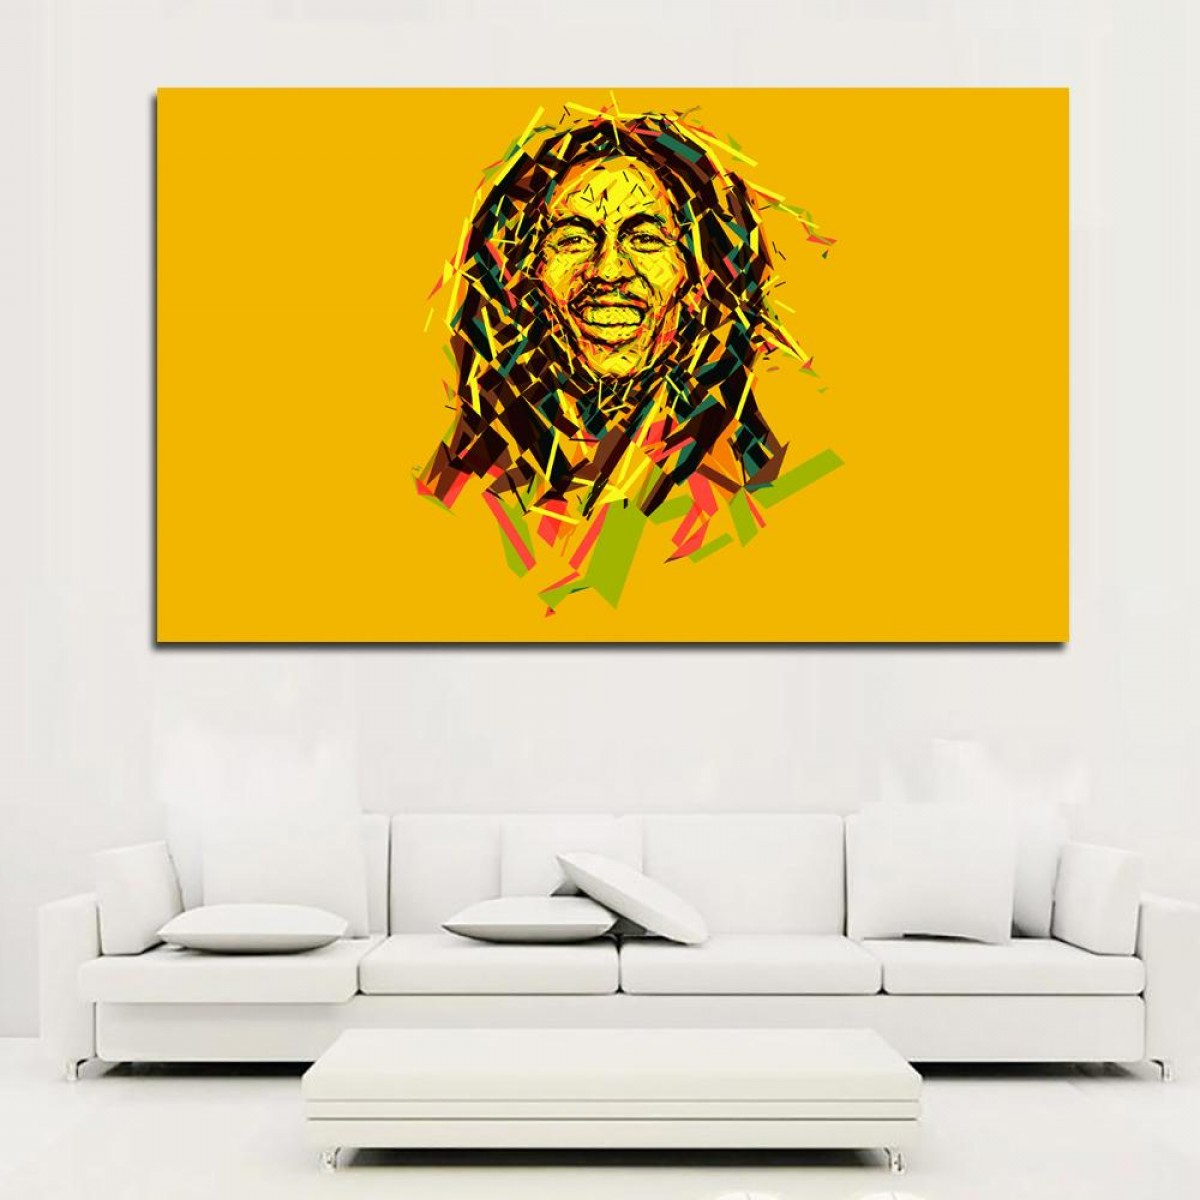 Wall Art Vector Graphics For The Home: Bob Marley Portrait Vector Graphics Colored Background Oil Painting On Canvas Art Prints For Living Room Home Decoration